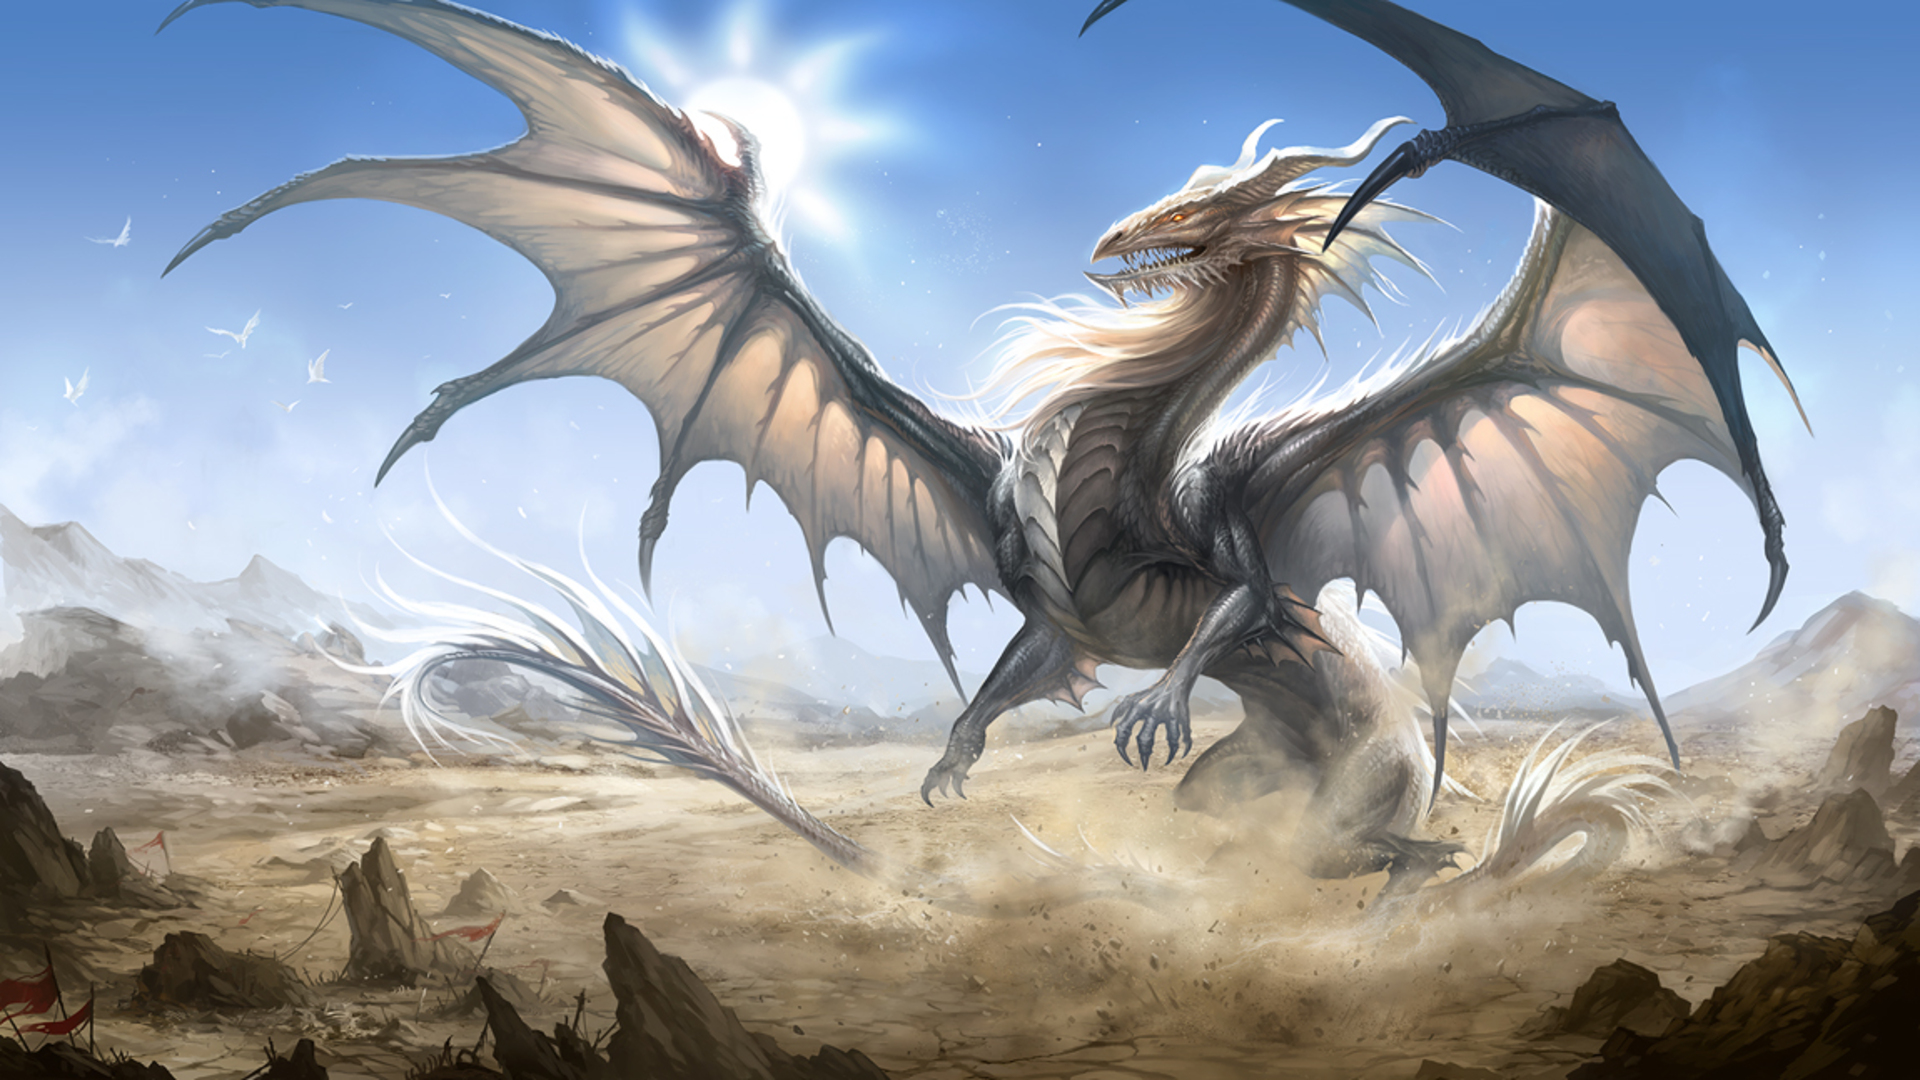 Dragon Wallpaper Android Phones